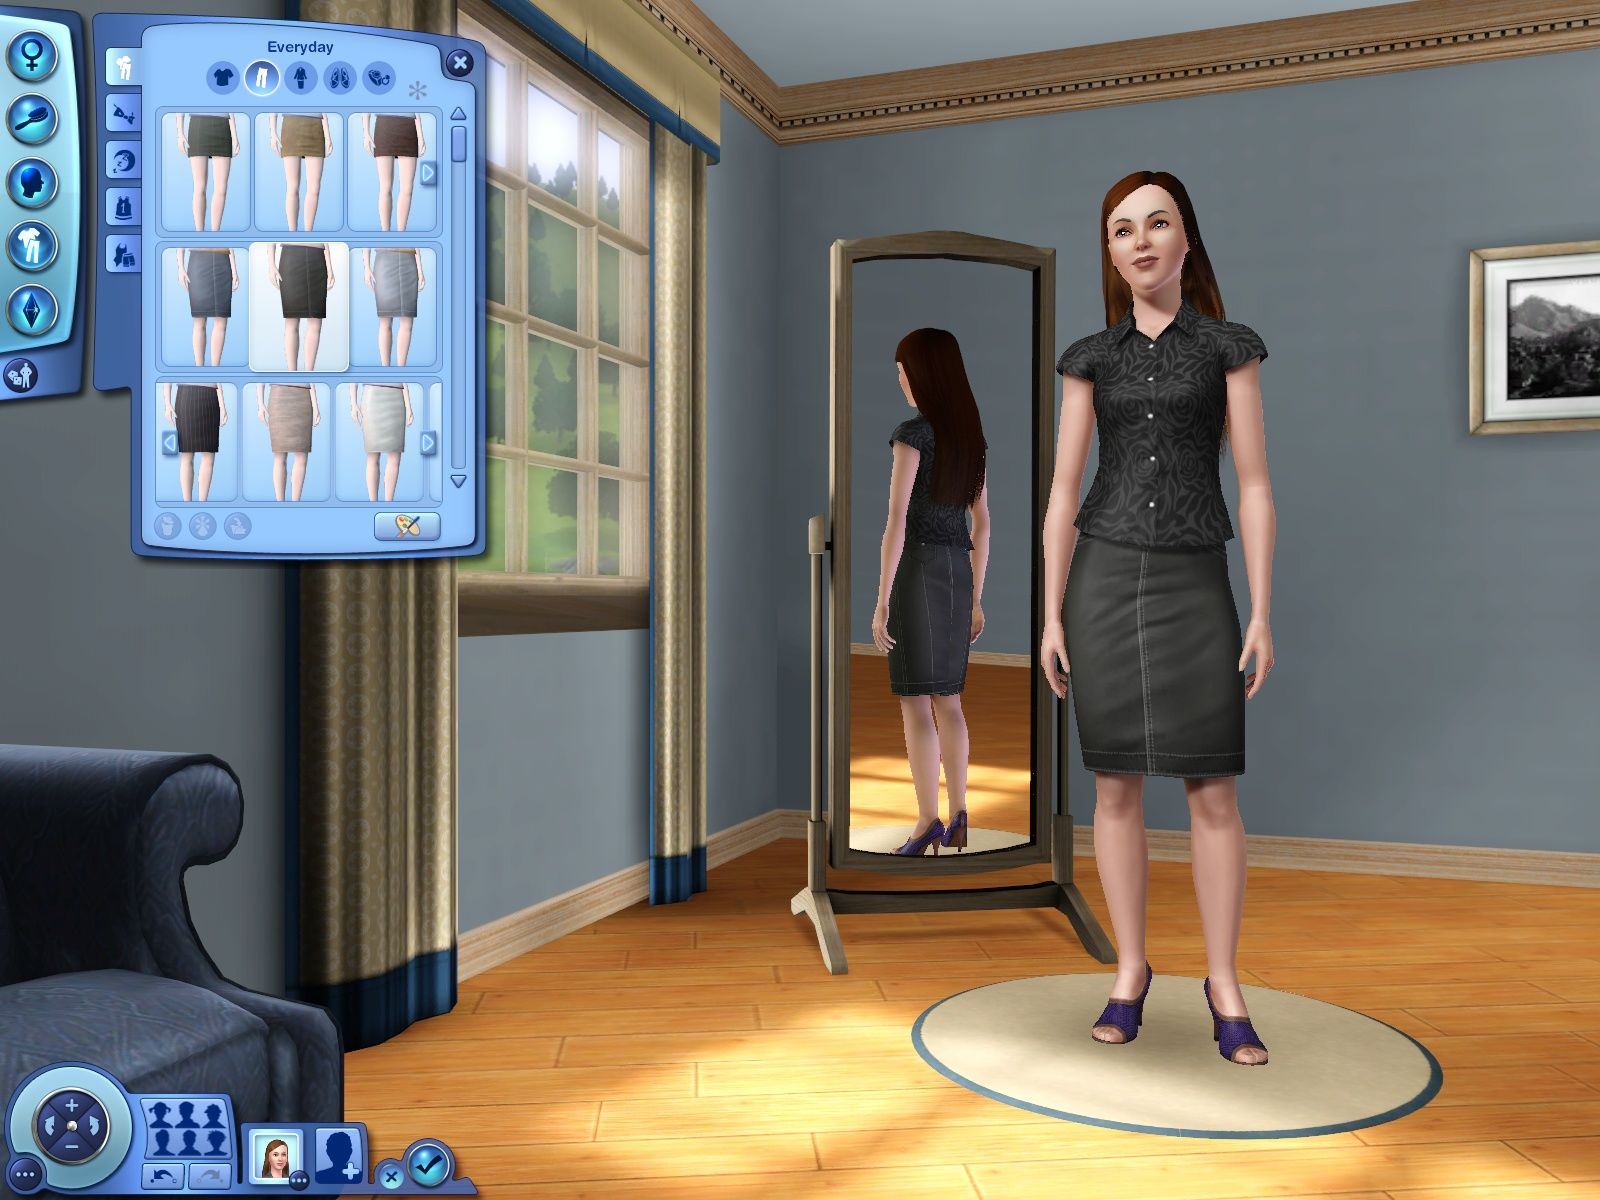 The Sims 3 Windows Character Creation